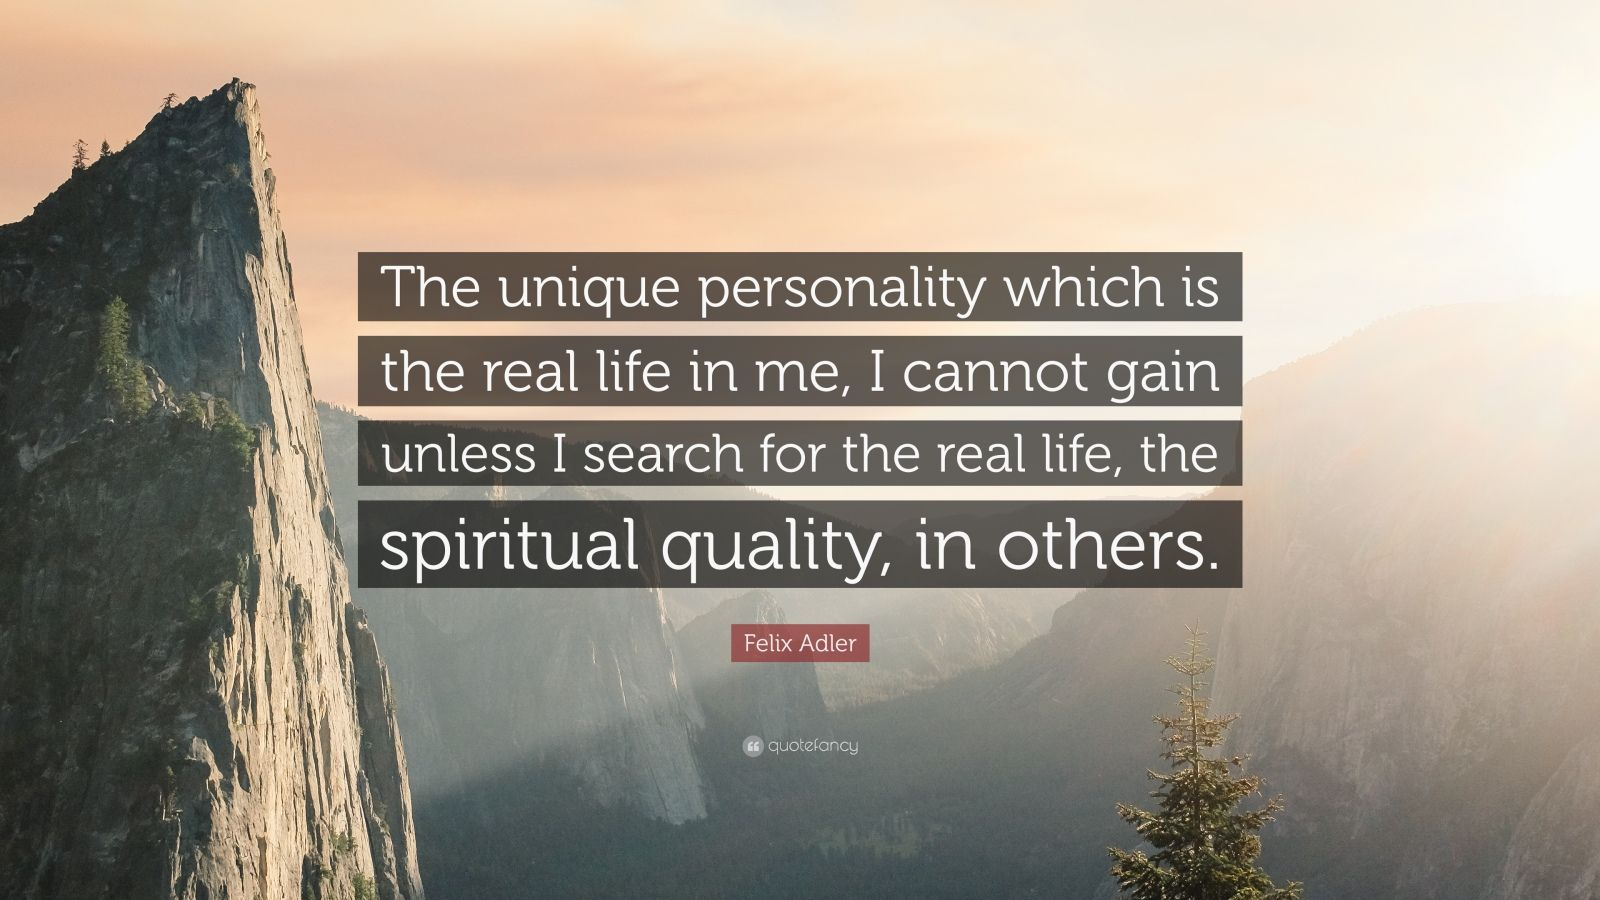 """Felix Adler Quote: """"The unique personality which is the real life in me, I cannot gain unless I search for the real life, the spiritual quality, in others."""""""